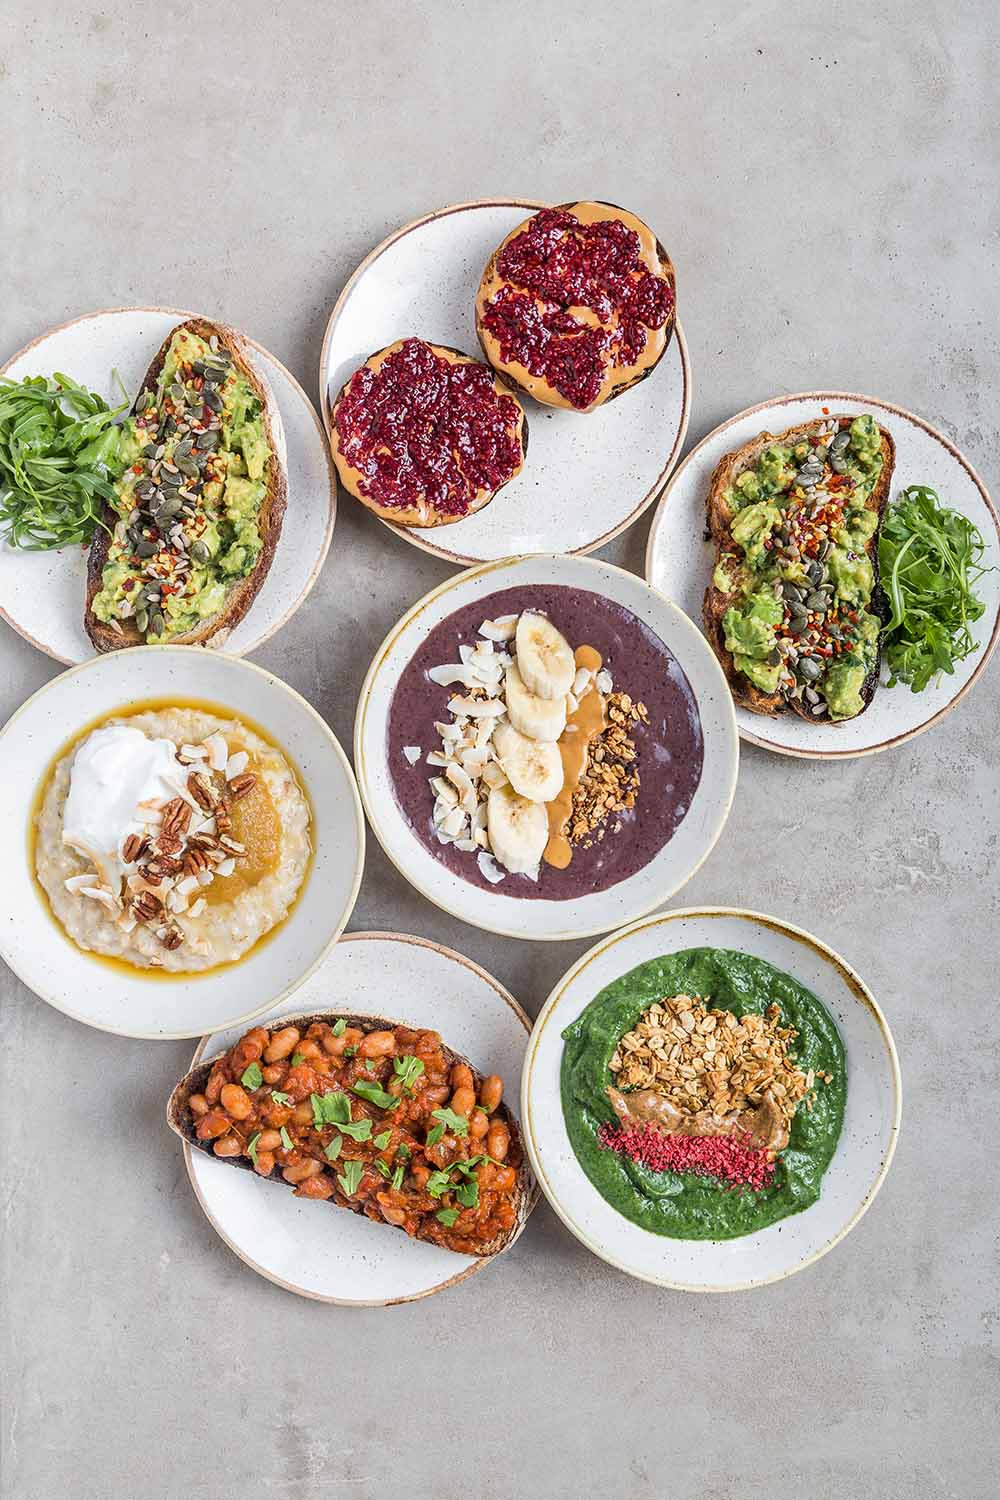 Deliciously ella vegan places to eat out this sring (2)